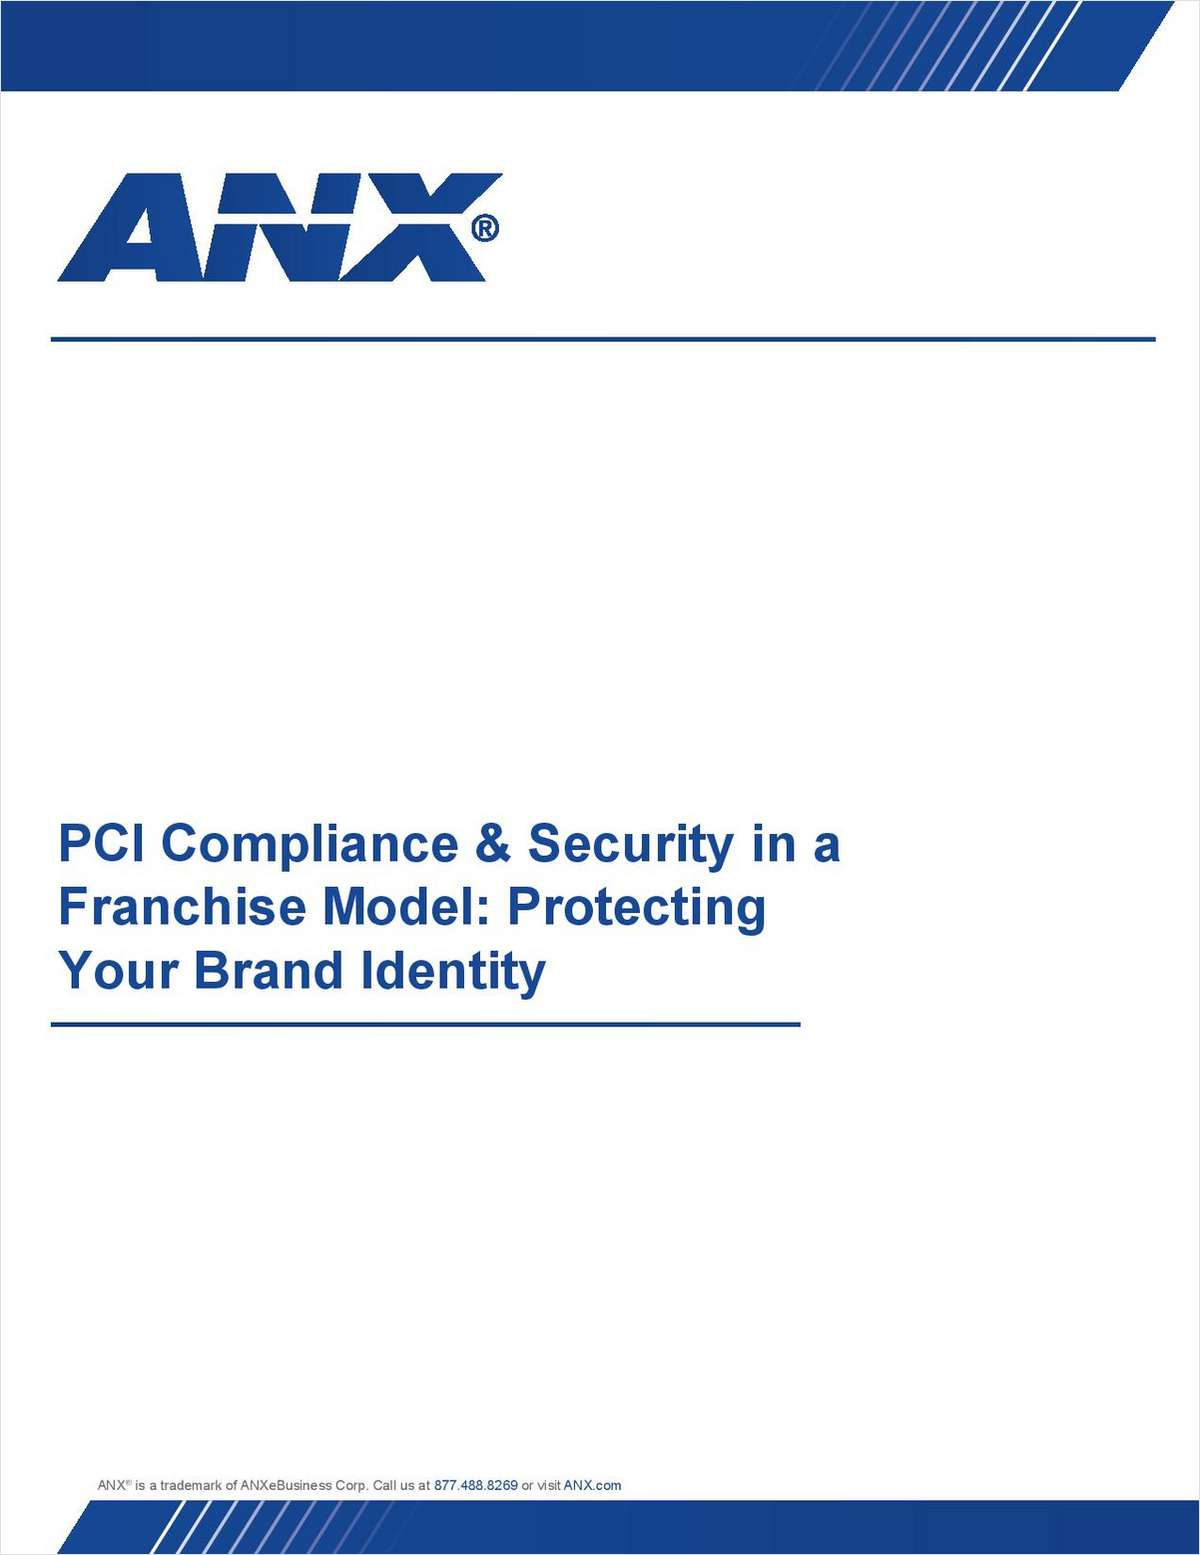 PCI Compliance & Security in a Franchise Model